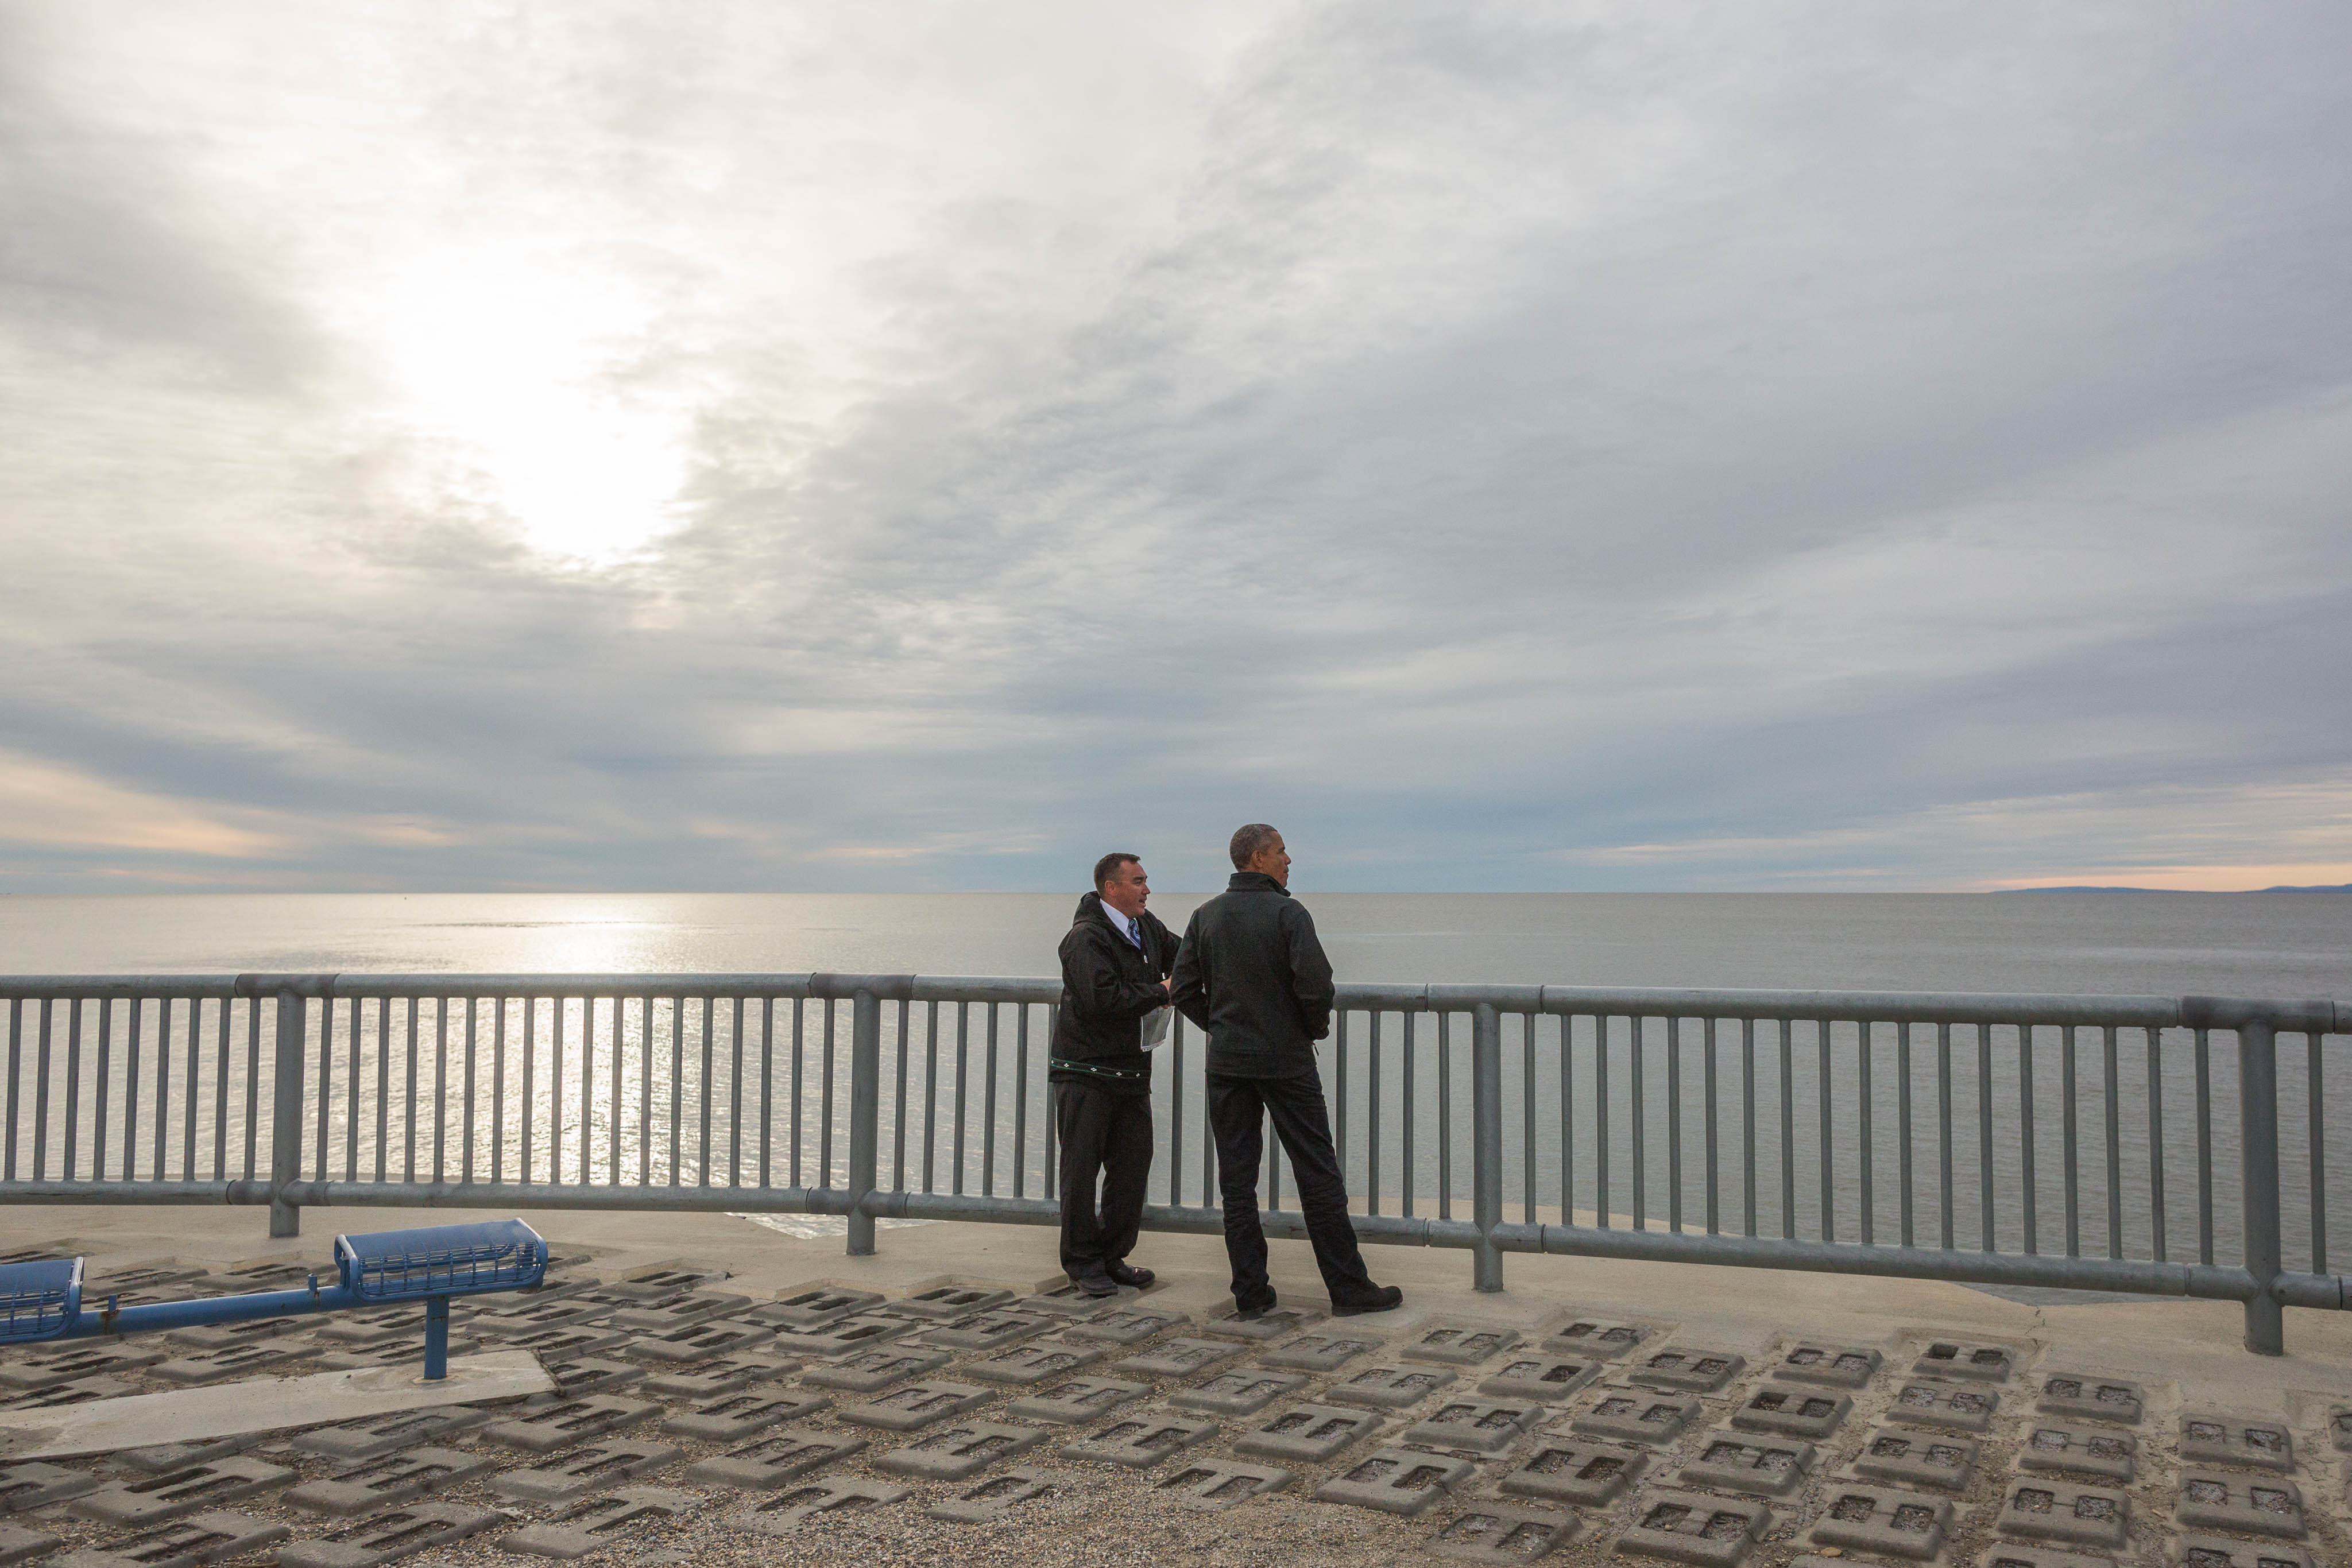 With Kotzebue City Manager Derek Martin, President Obama views the seawall that protects the community from winter storm surges on Wednesday, September 2, 2015.